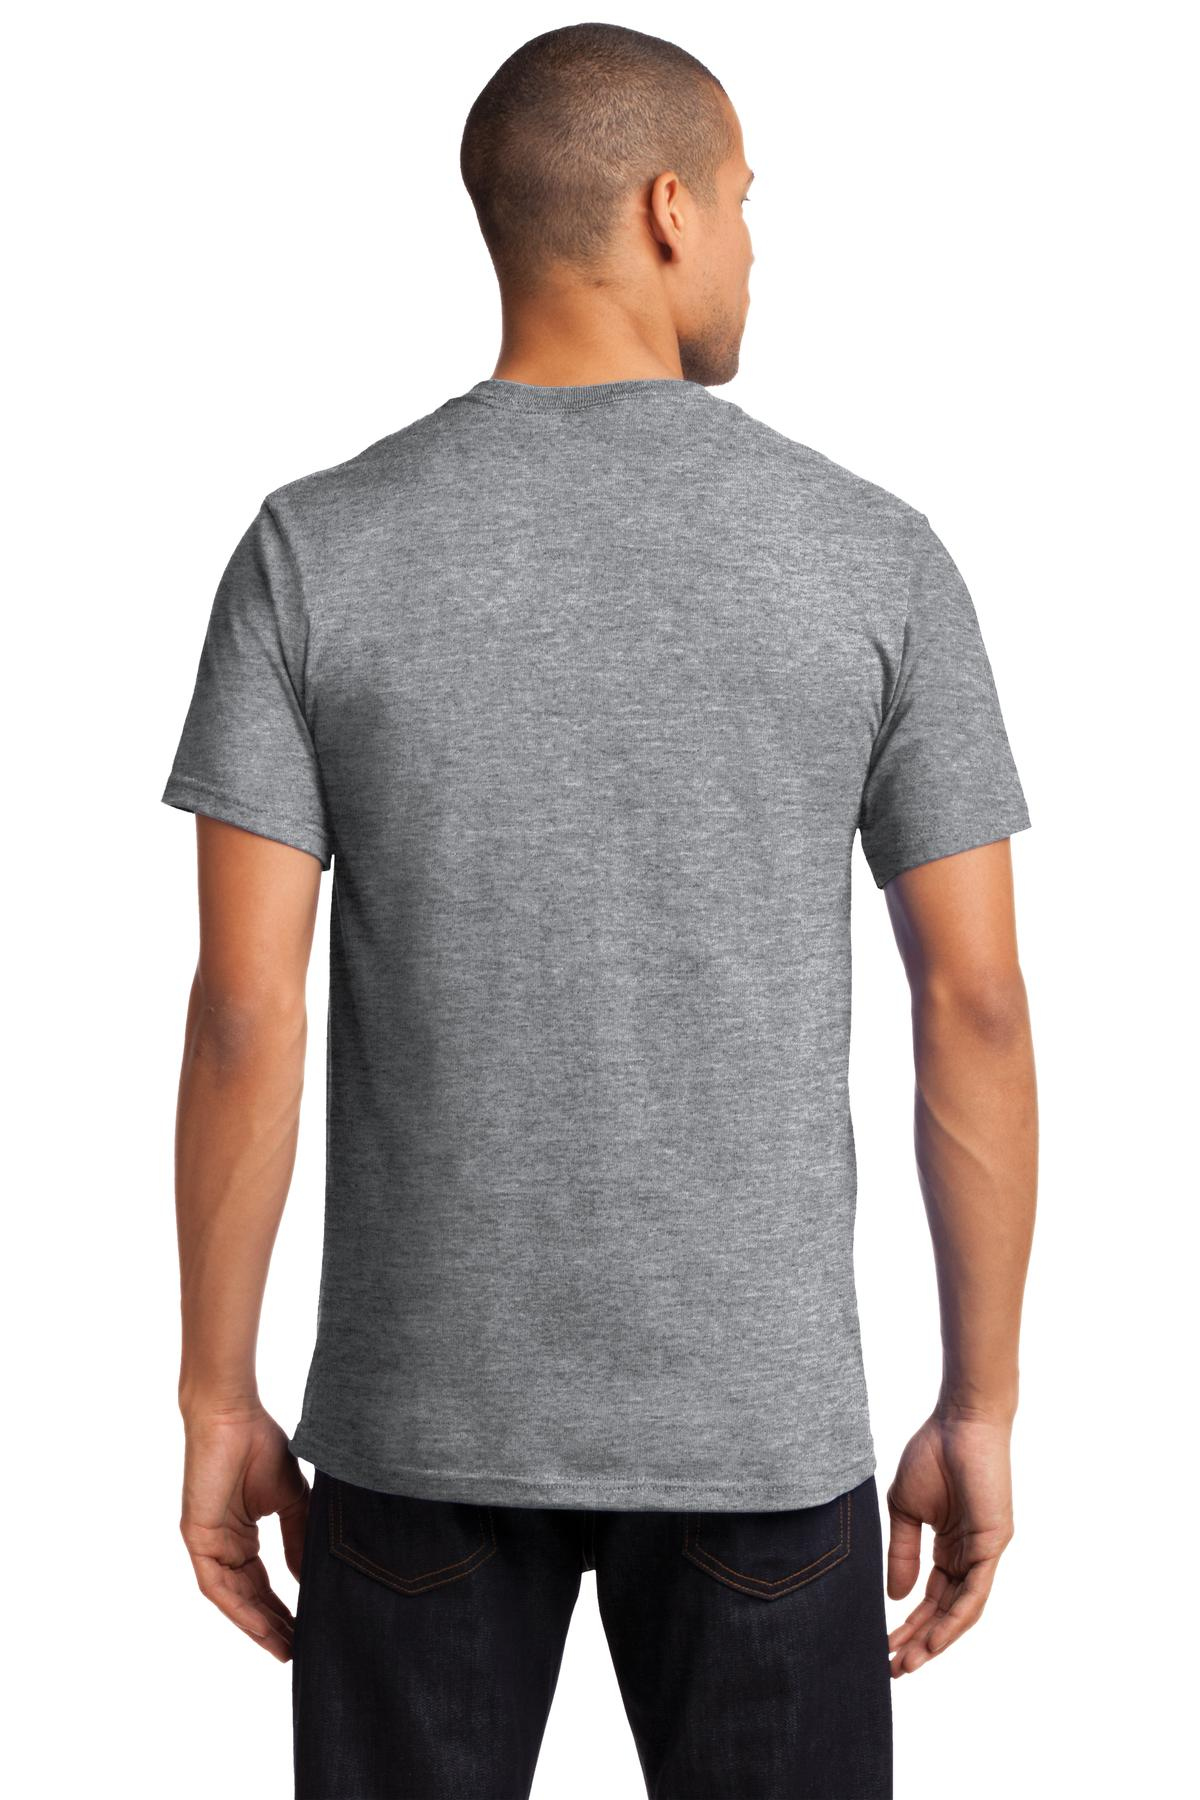 Port-amp-Company-Tall-Essential-TShirt-with-Pocket-PC61PT-Size-LT-4XLT thumbnail 6